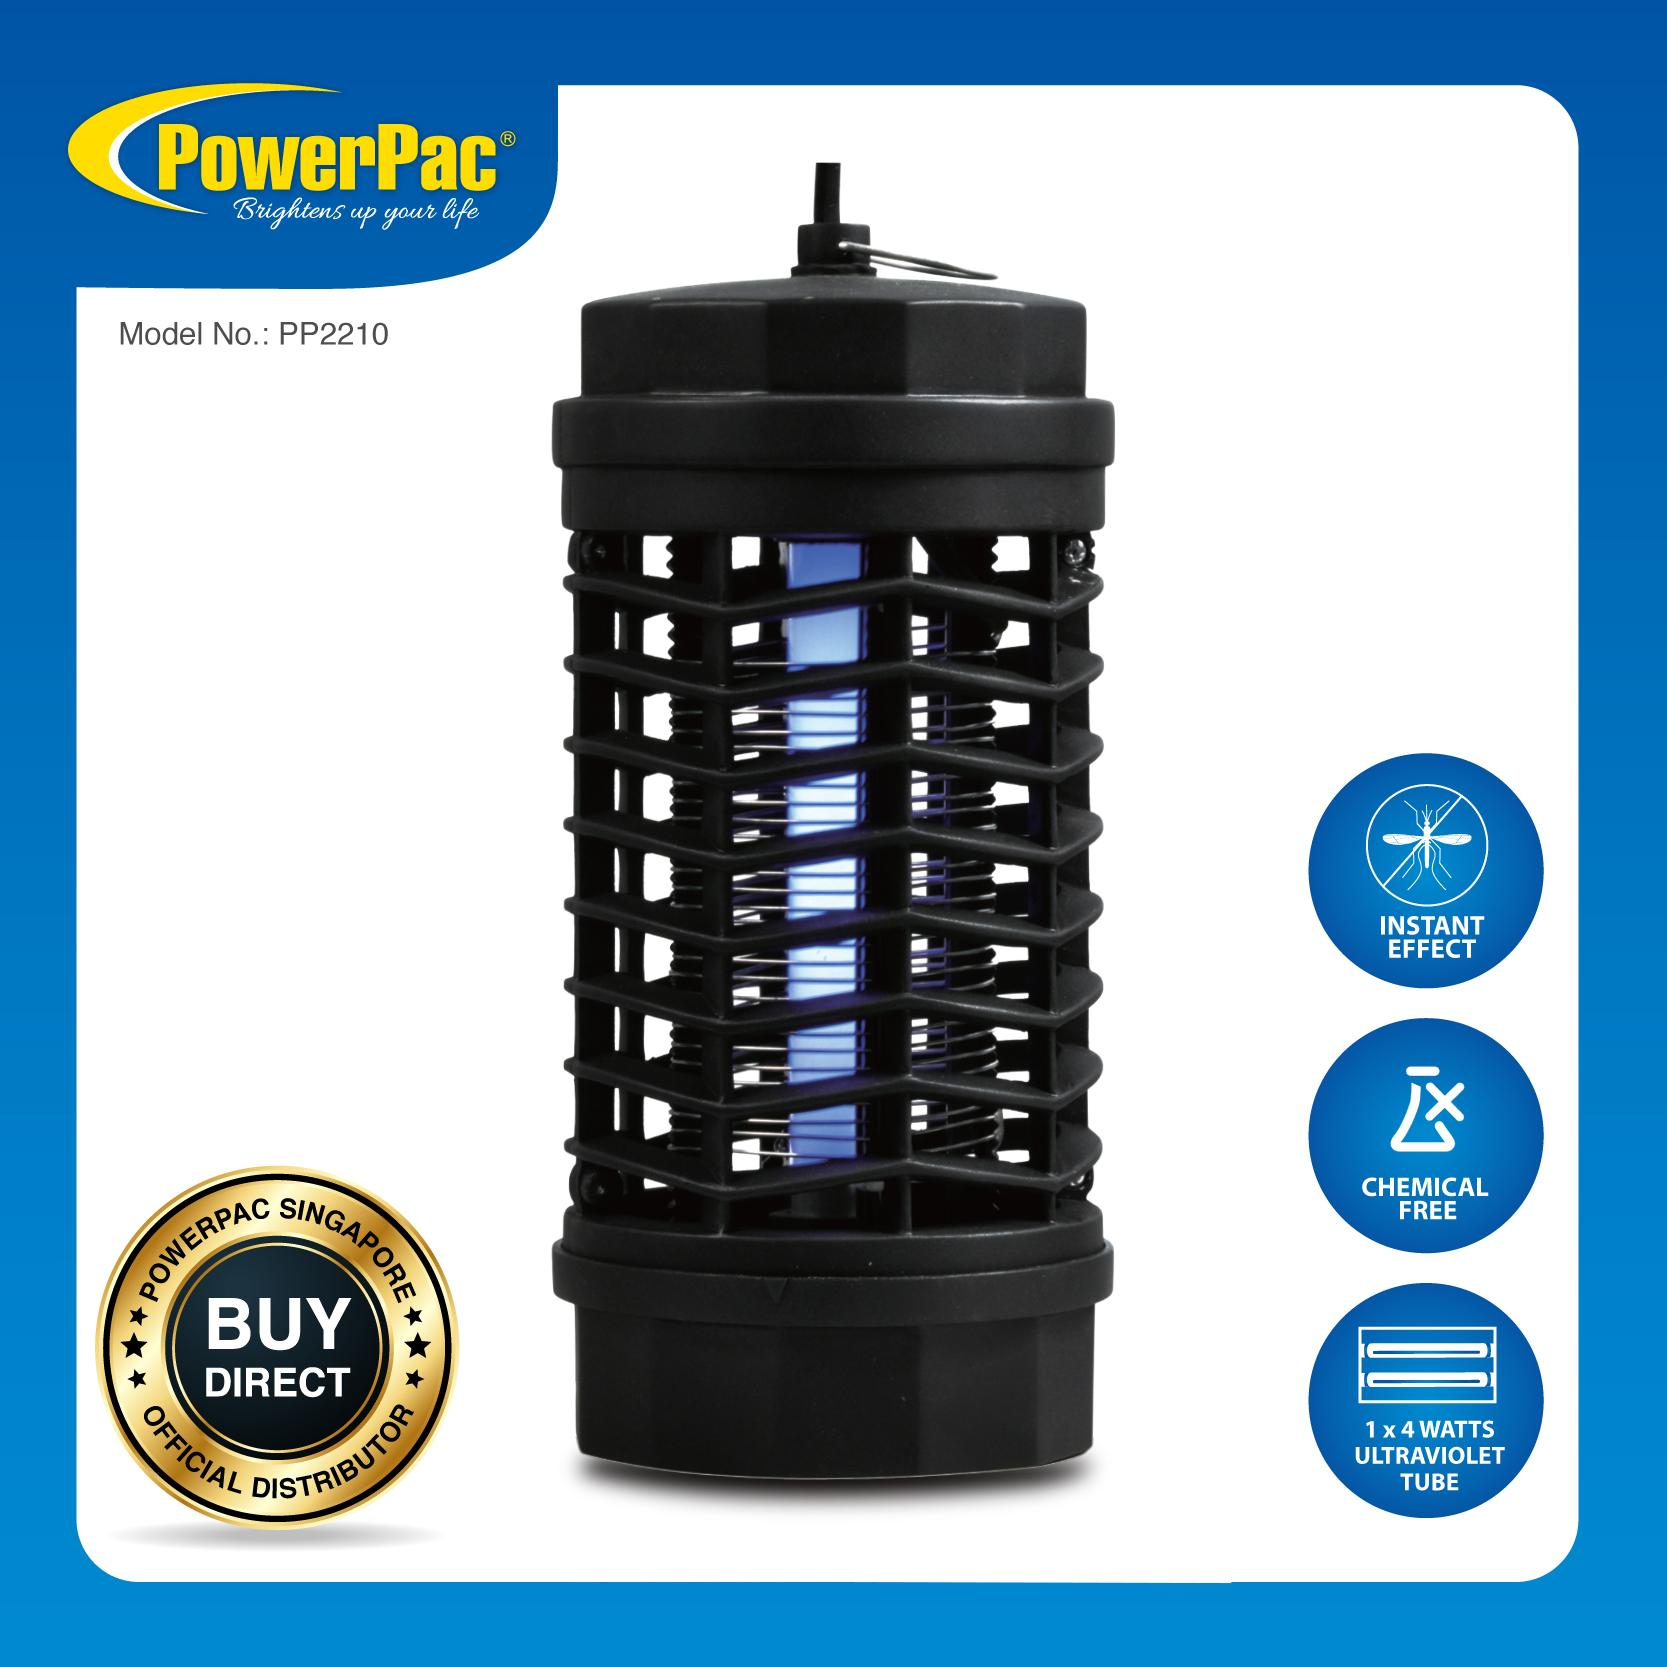 Who Sells Powerpac Electronic Insect Killer Kills Insect And Mosquitoes Instantly Pp2210